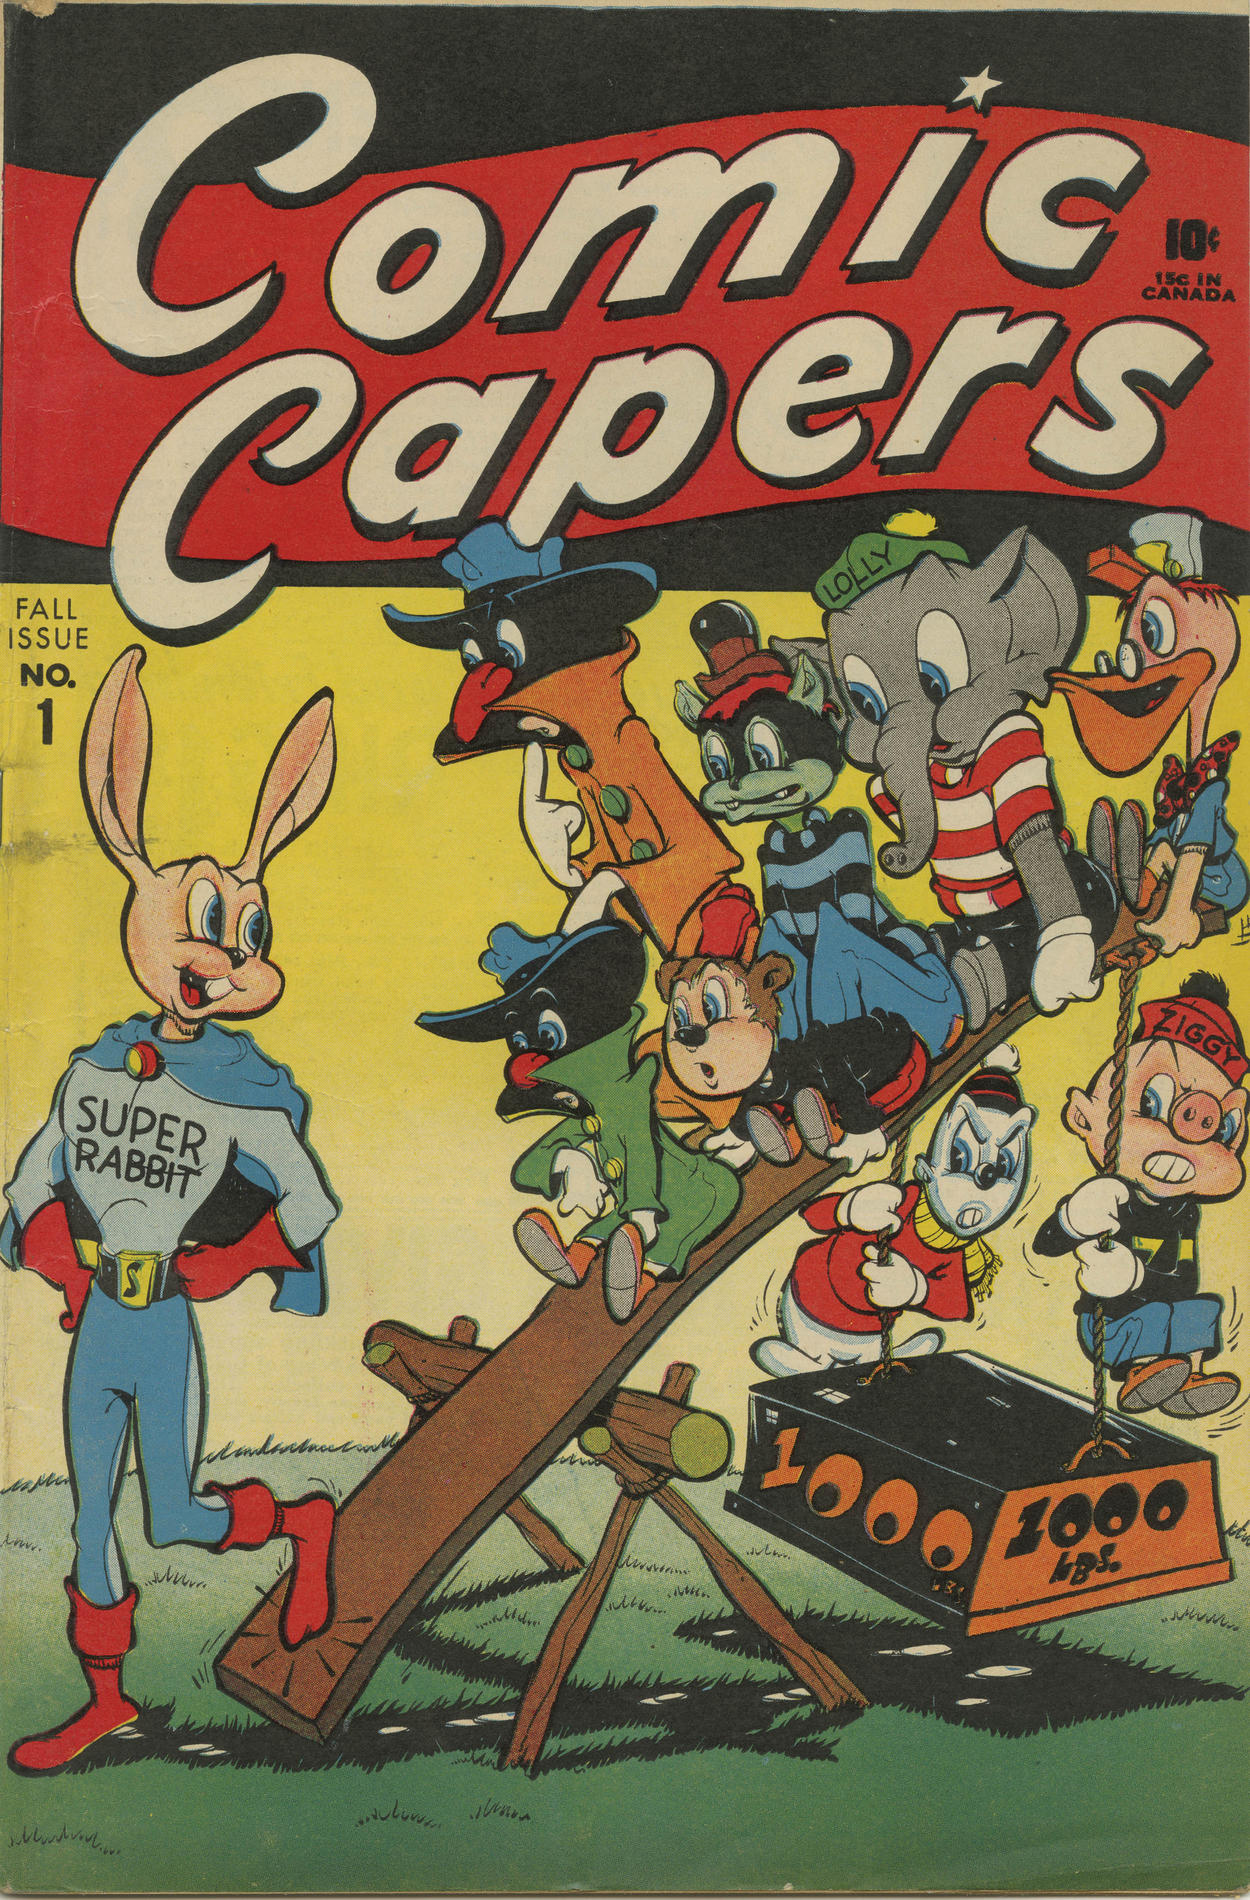 Cover of Comic Capers